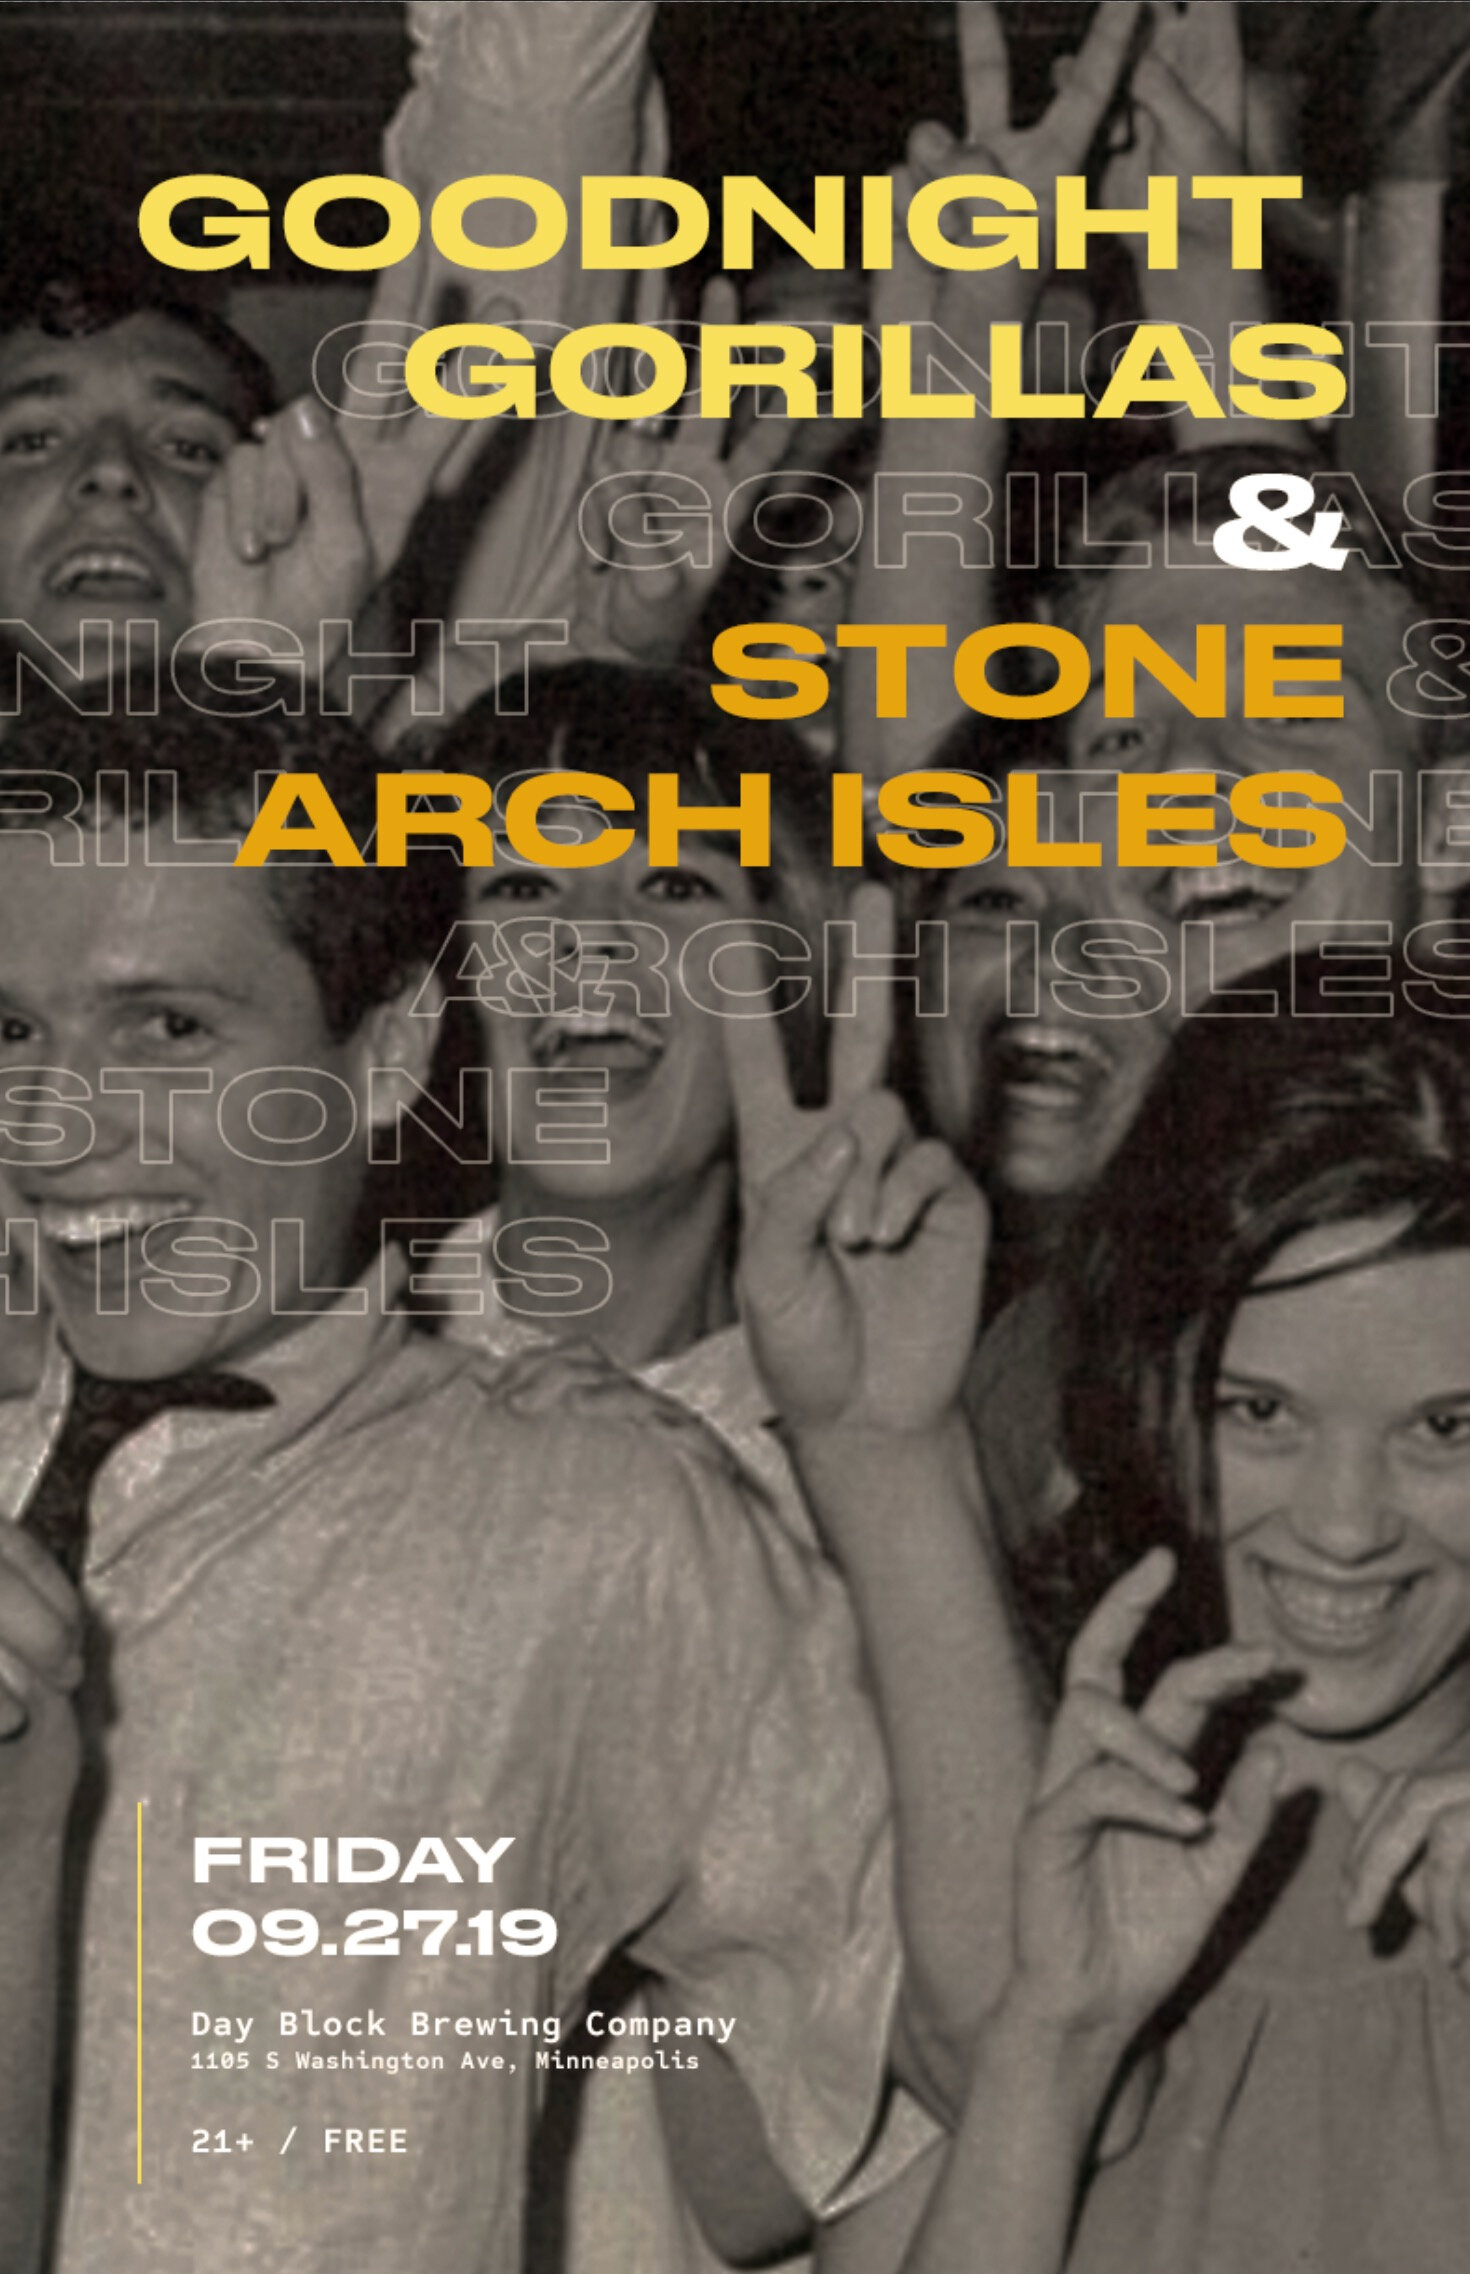 Goodnight Gorillas & Stone Arch Isles - Friday, Sept. 27 • Day Block Brewing • 9pm • FREE!EVENT PAGE